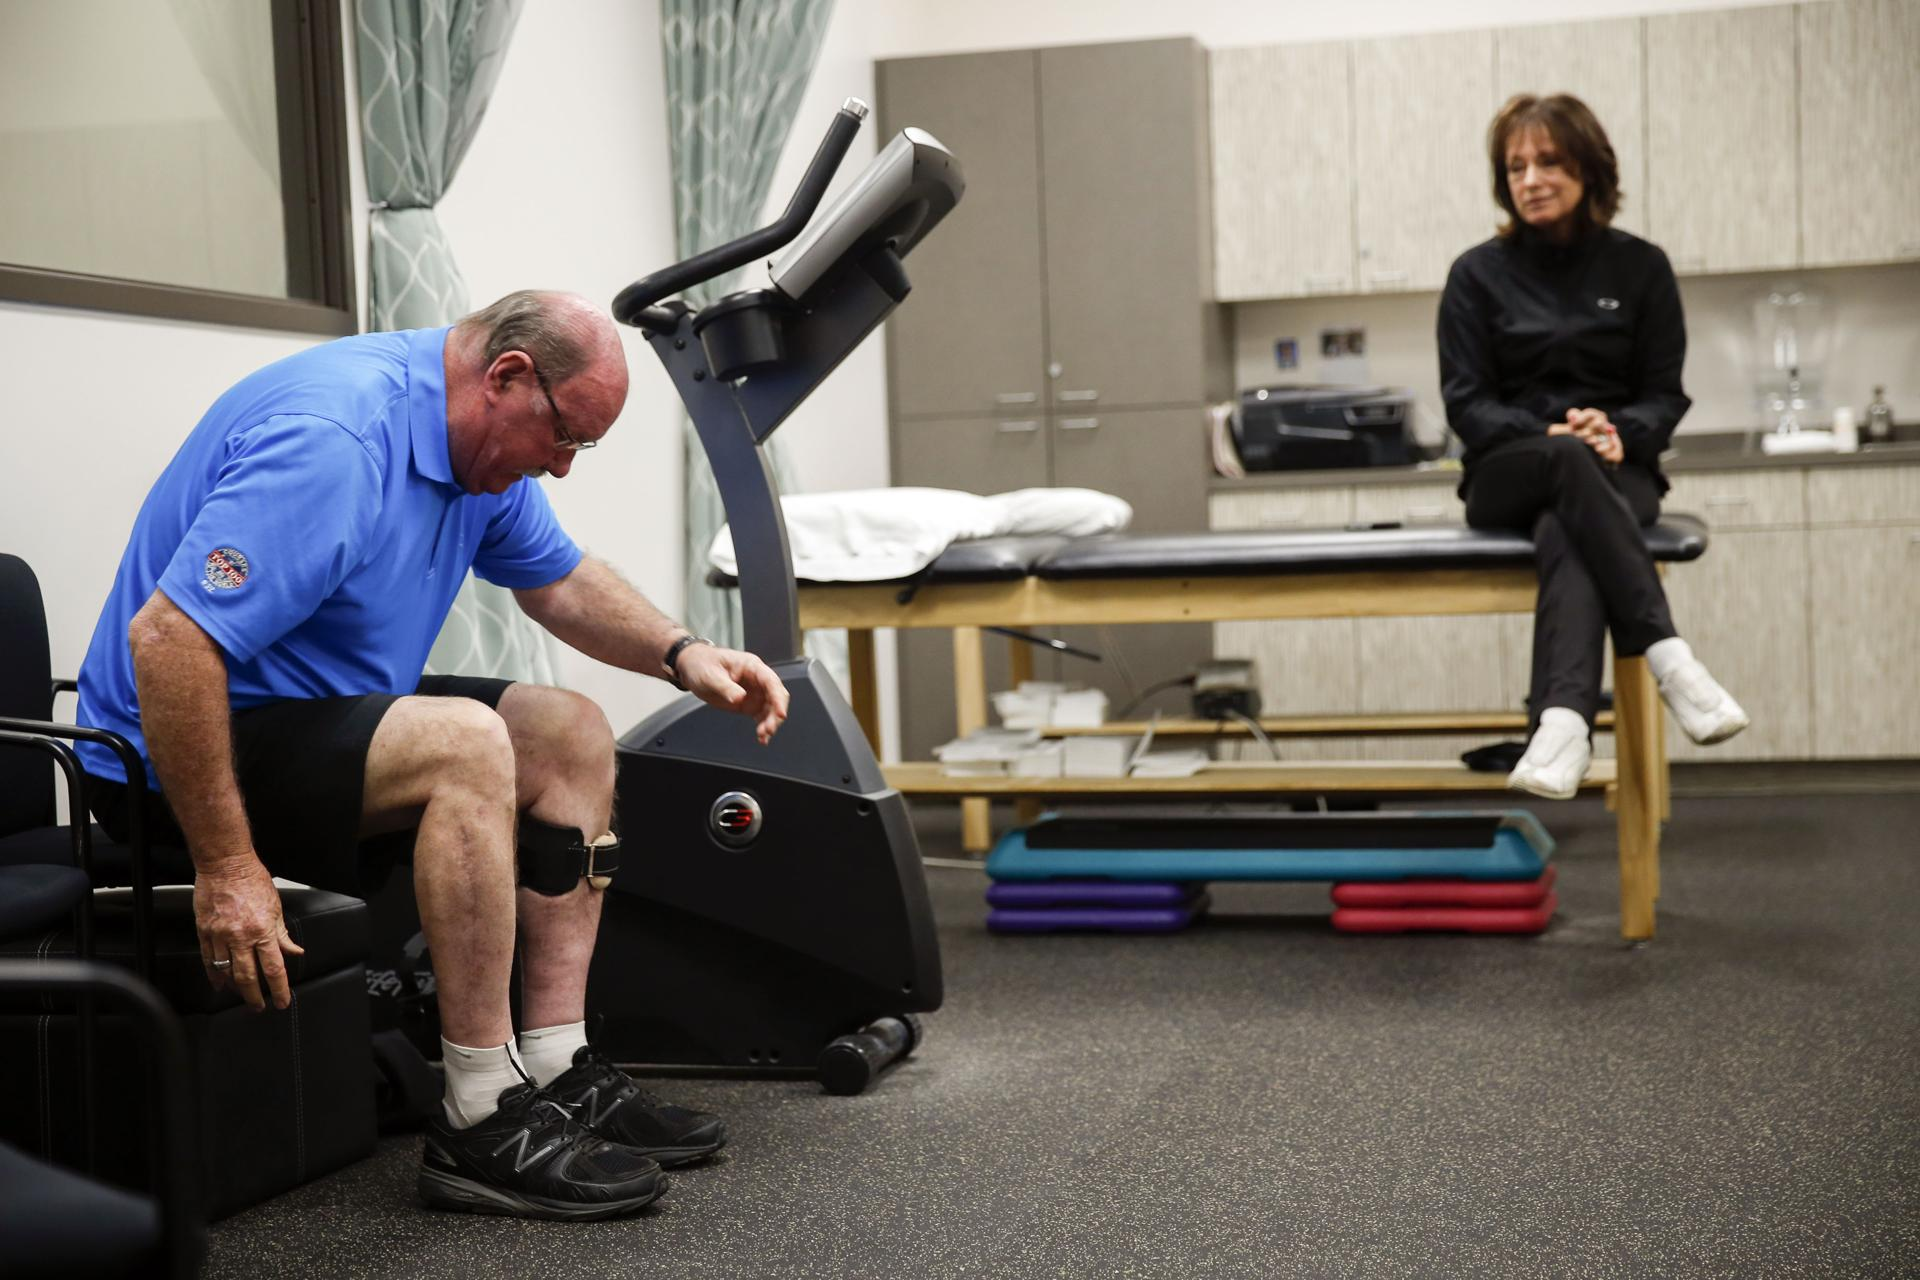 John Odom can walk again, although part of his left leg is essentially paralyzed and he needs regular therapy.